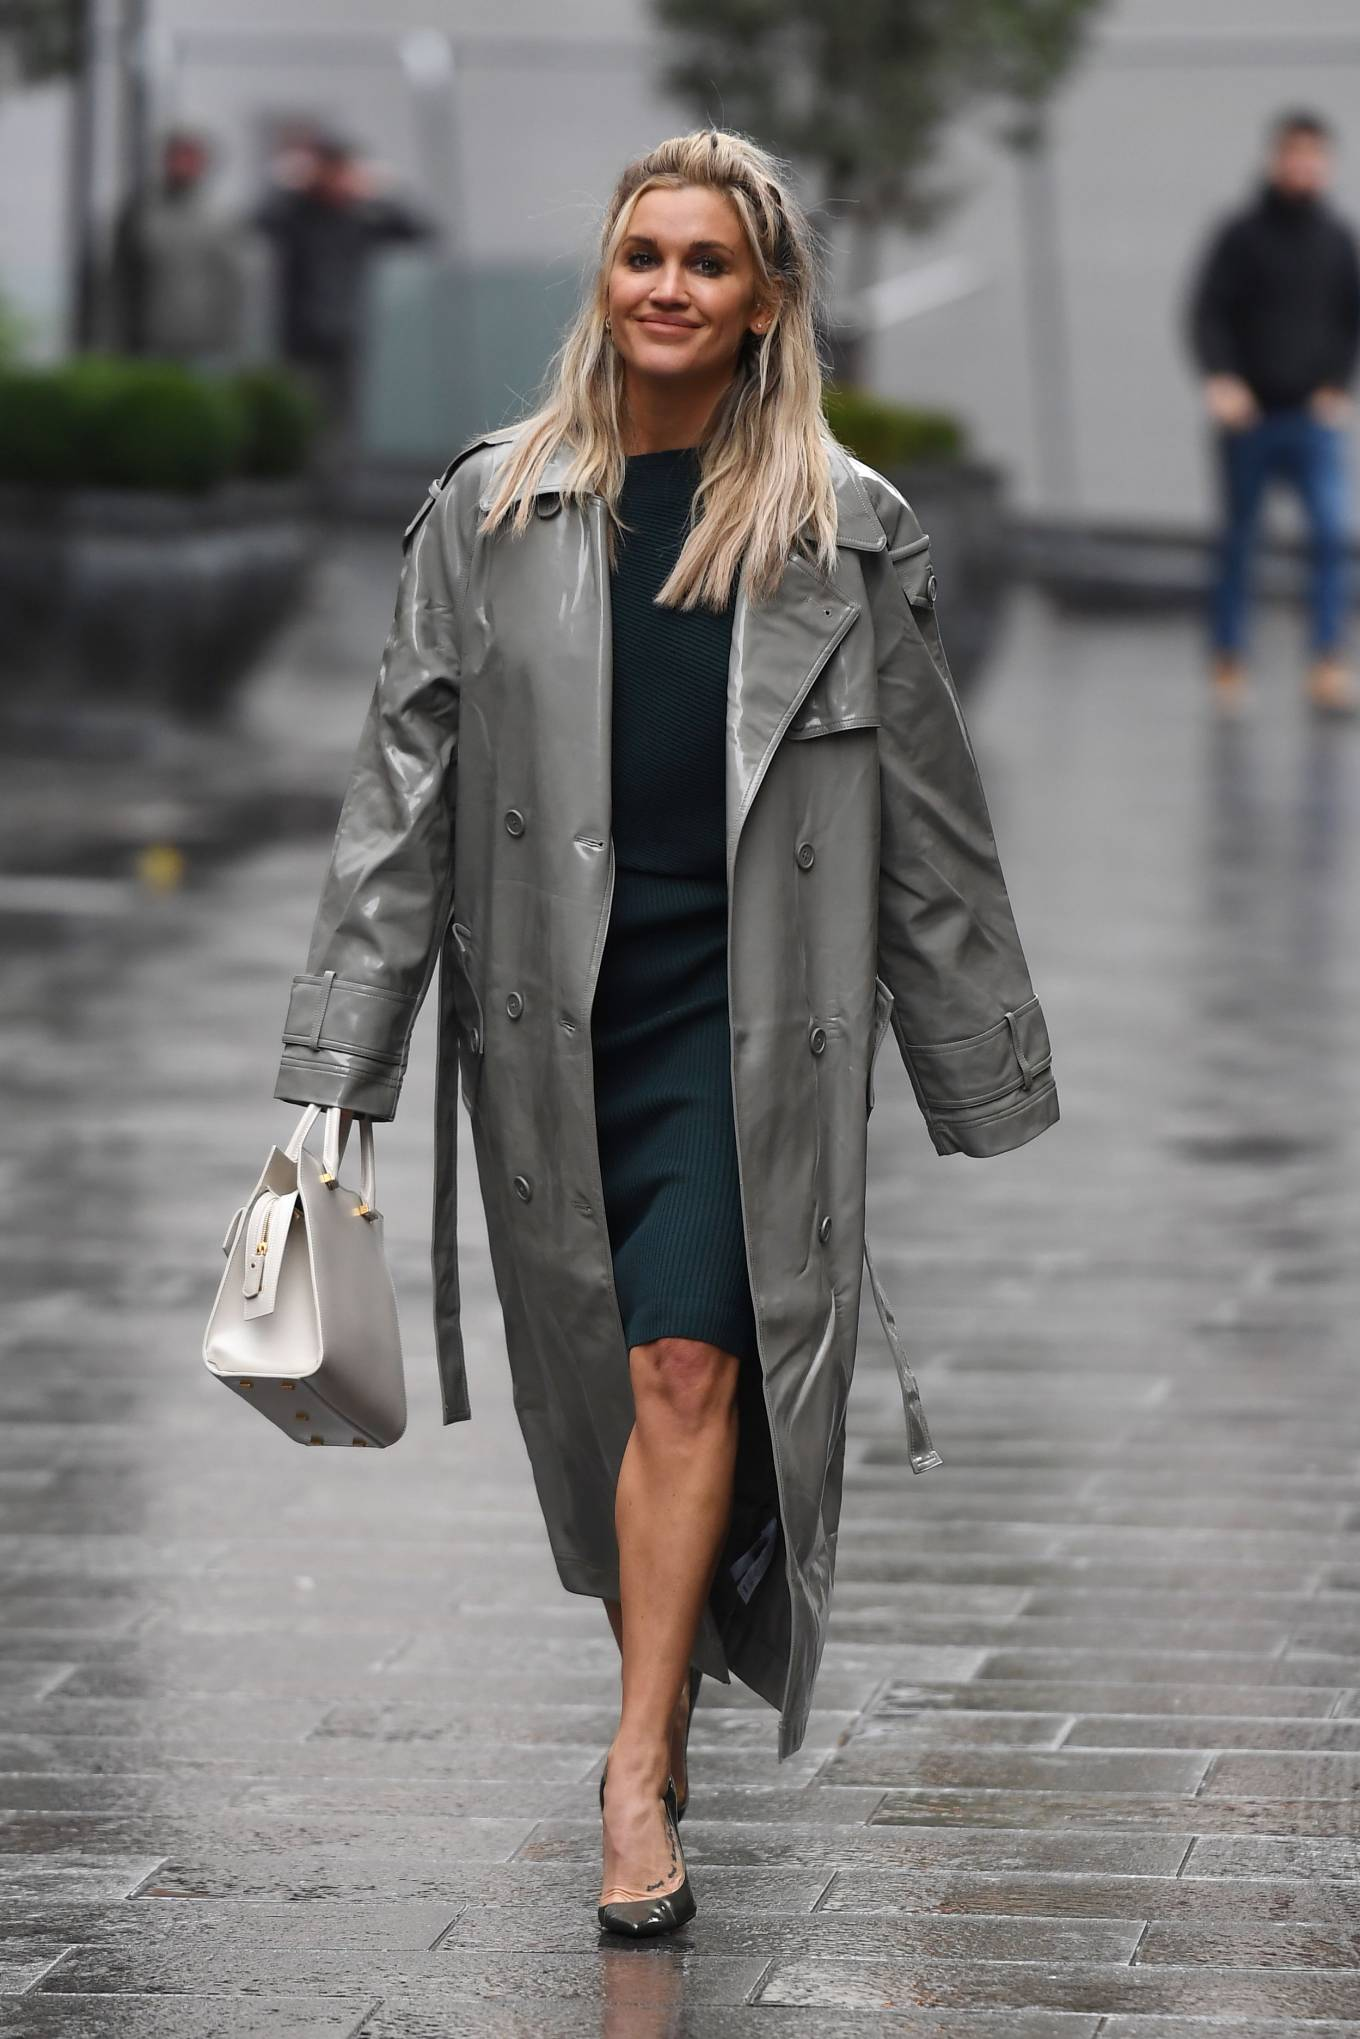 Ashley Roberts 2020 : Ashley Roberts – Looks chic in silver coat and pencil skirt in London-03